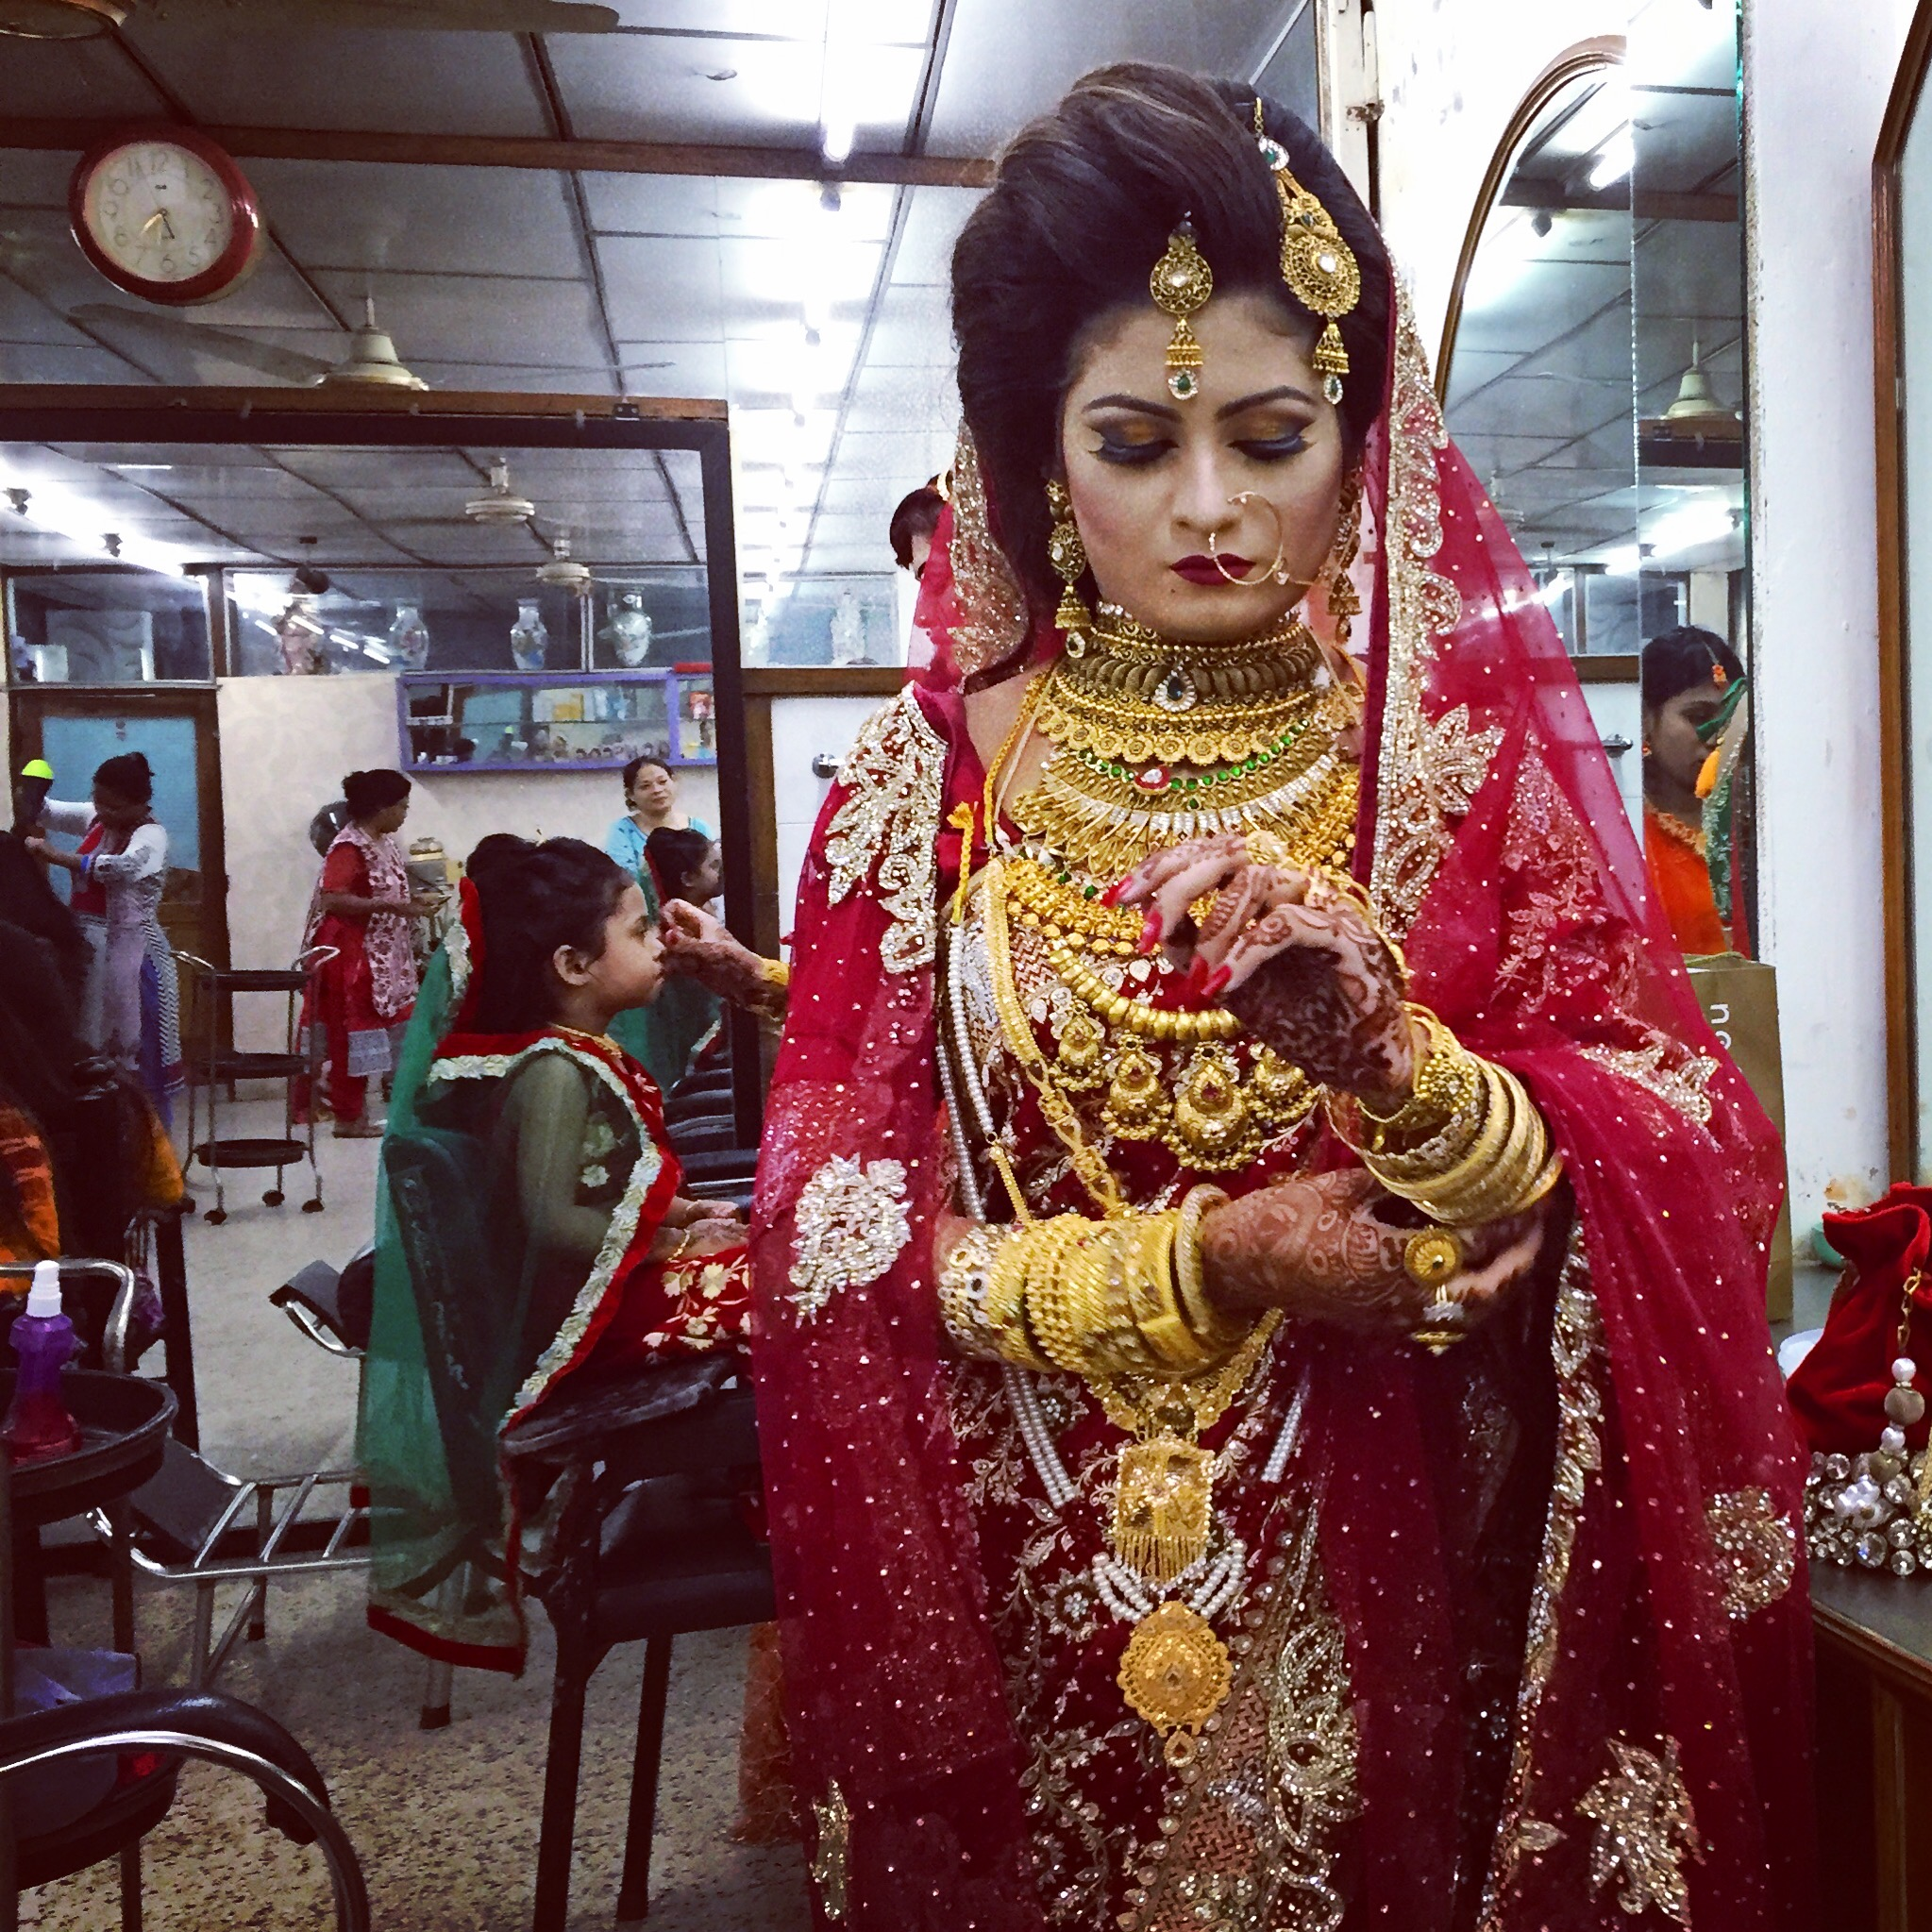 DHAKA | A bride-to-be puts on her gold bangles, the last step in a lengthy process of preparing for her nuptials. July 27, 2016.